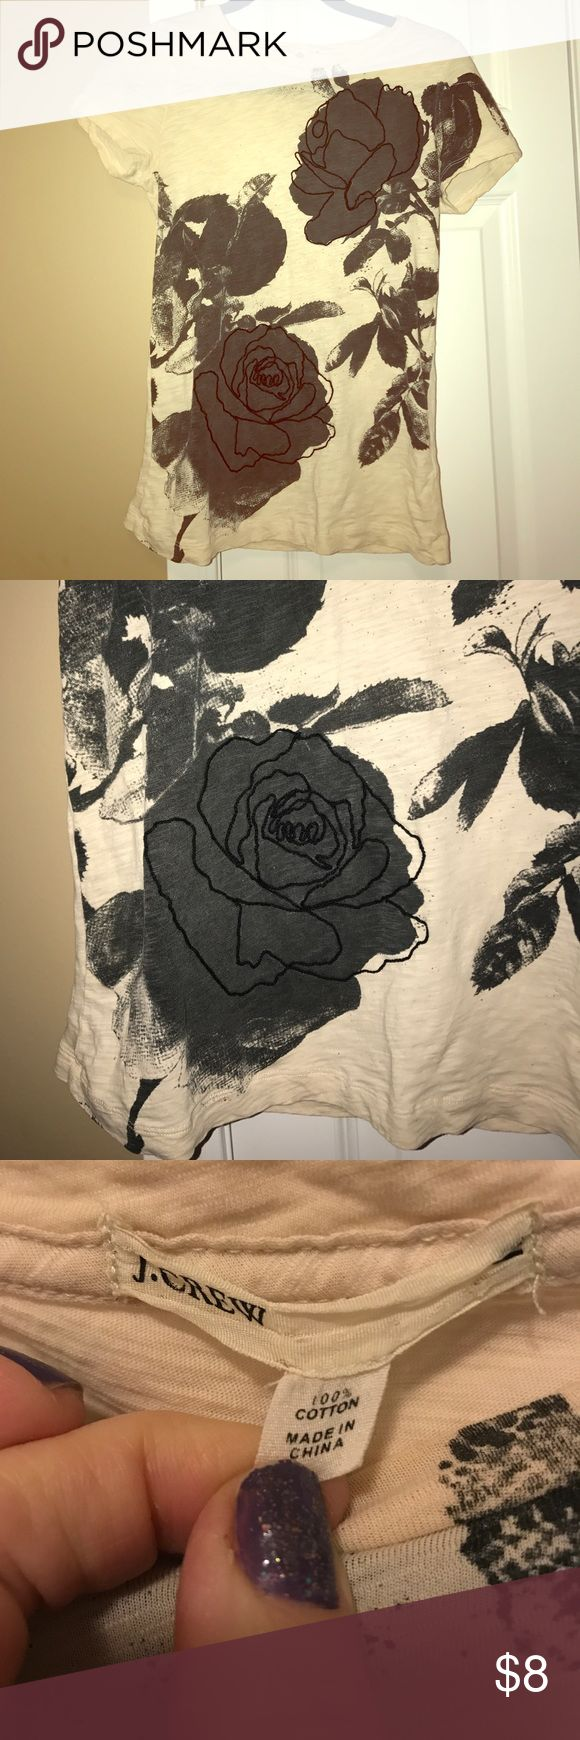 Short sleeved dressy floral tee size M Cream short sleeved tee with gray and black floral design on the front. Brand is J Crew and its in excellent condition. Some women's medium. J Crew Tops Tees - Short Sleeve